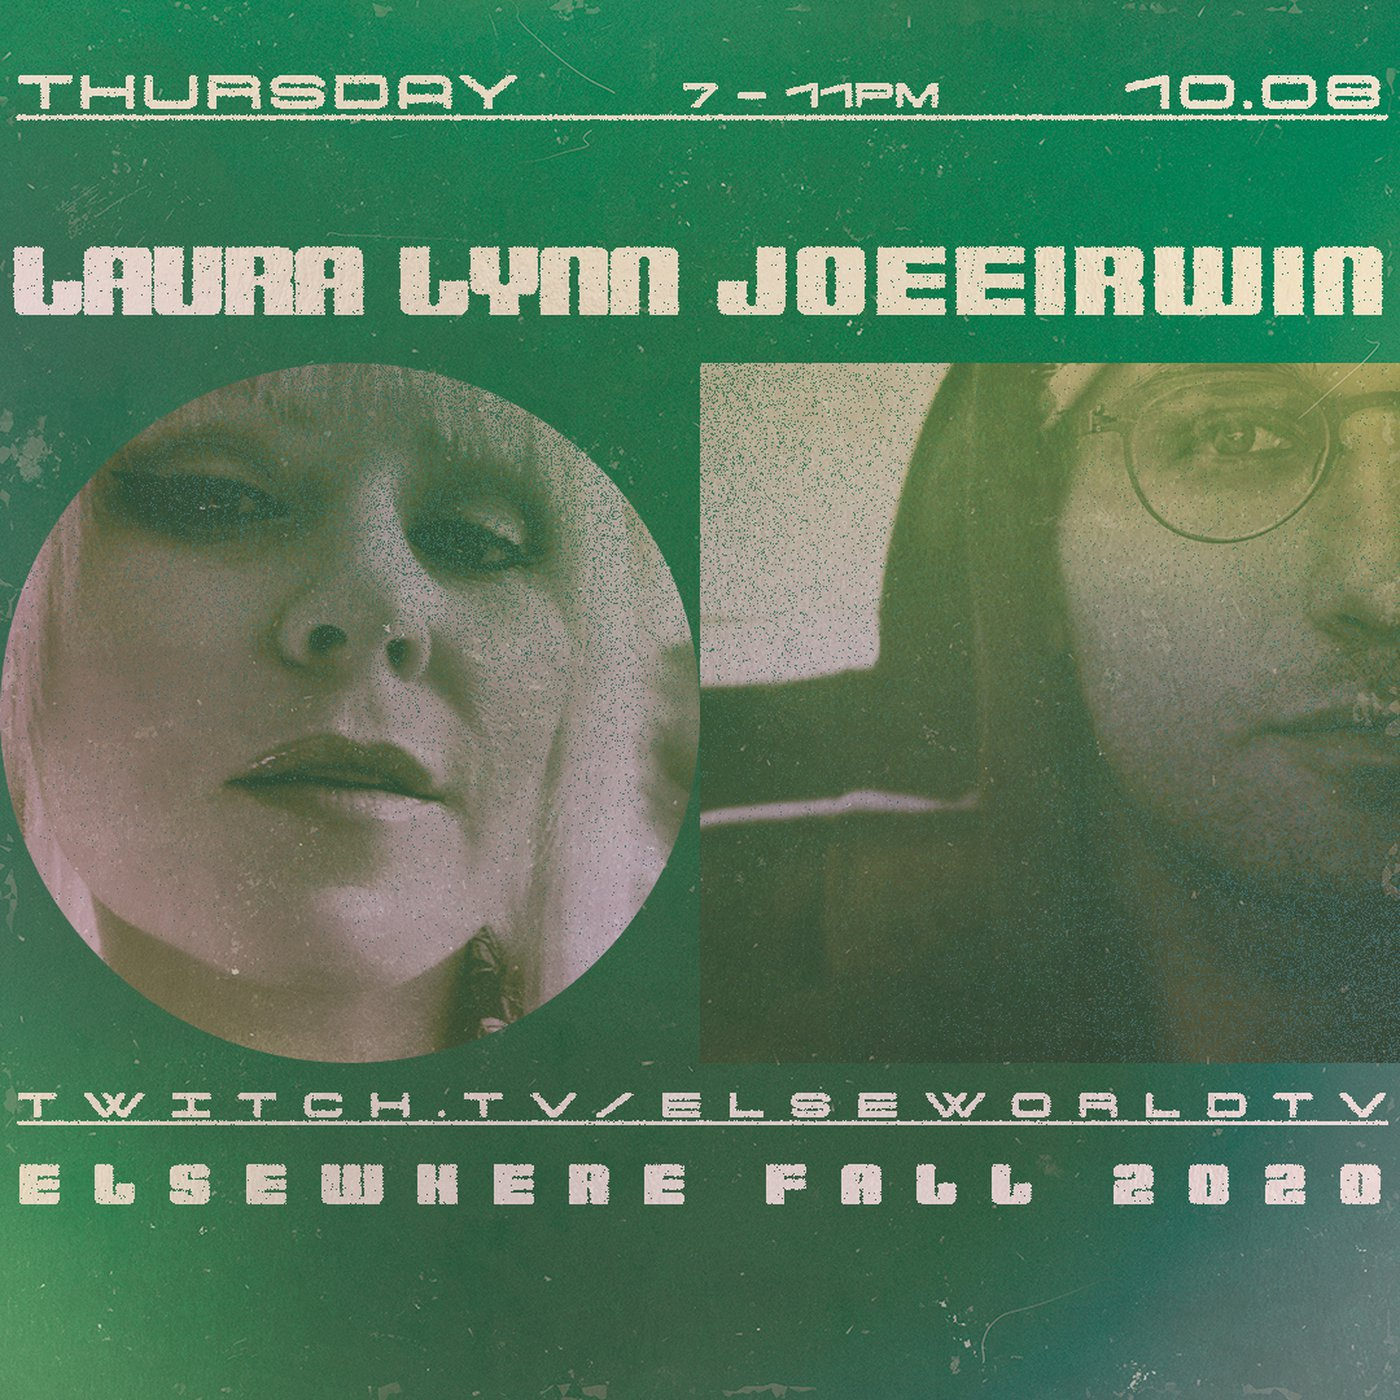 Elseworld TV October 8th with Laura Lynn and JOEEIRWIN